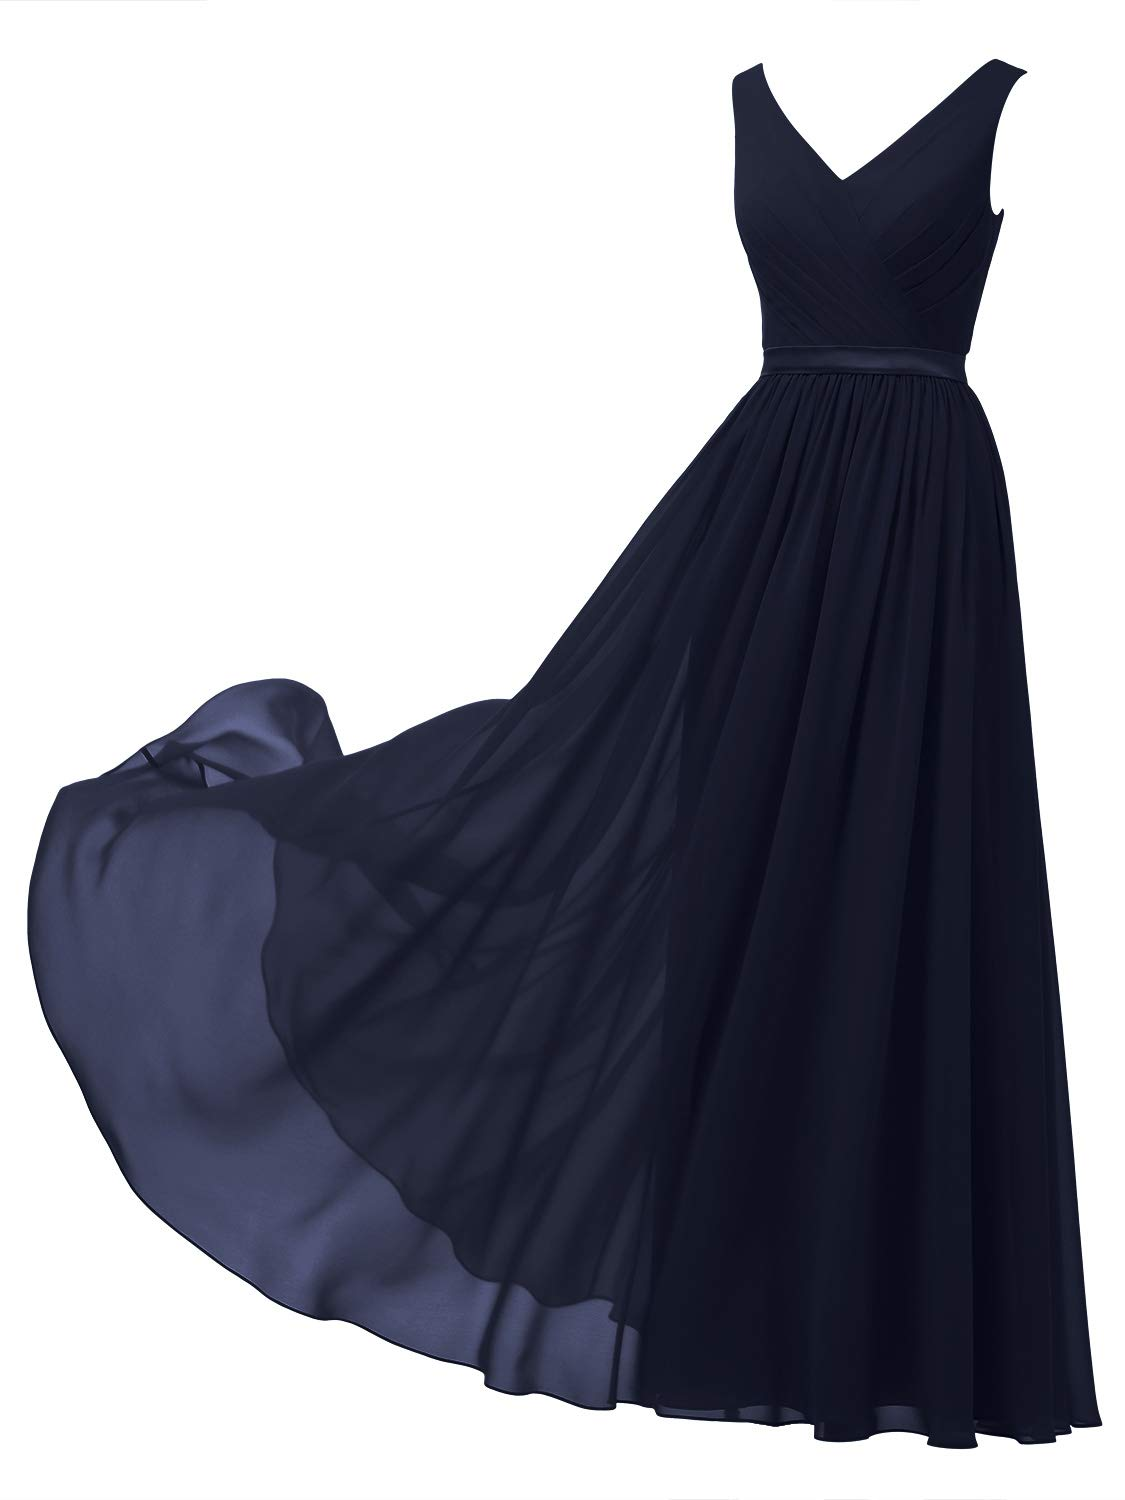 Available at Amazon: Alicepub V-Neck Chiffon Bridesmaid Dress Long Party Evening Formal Gown Sleeveless